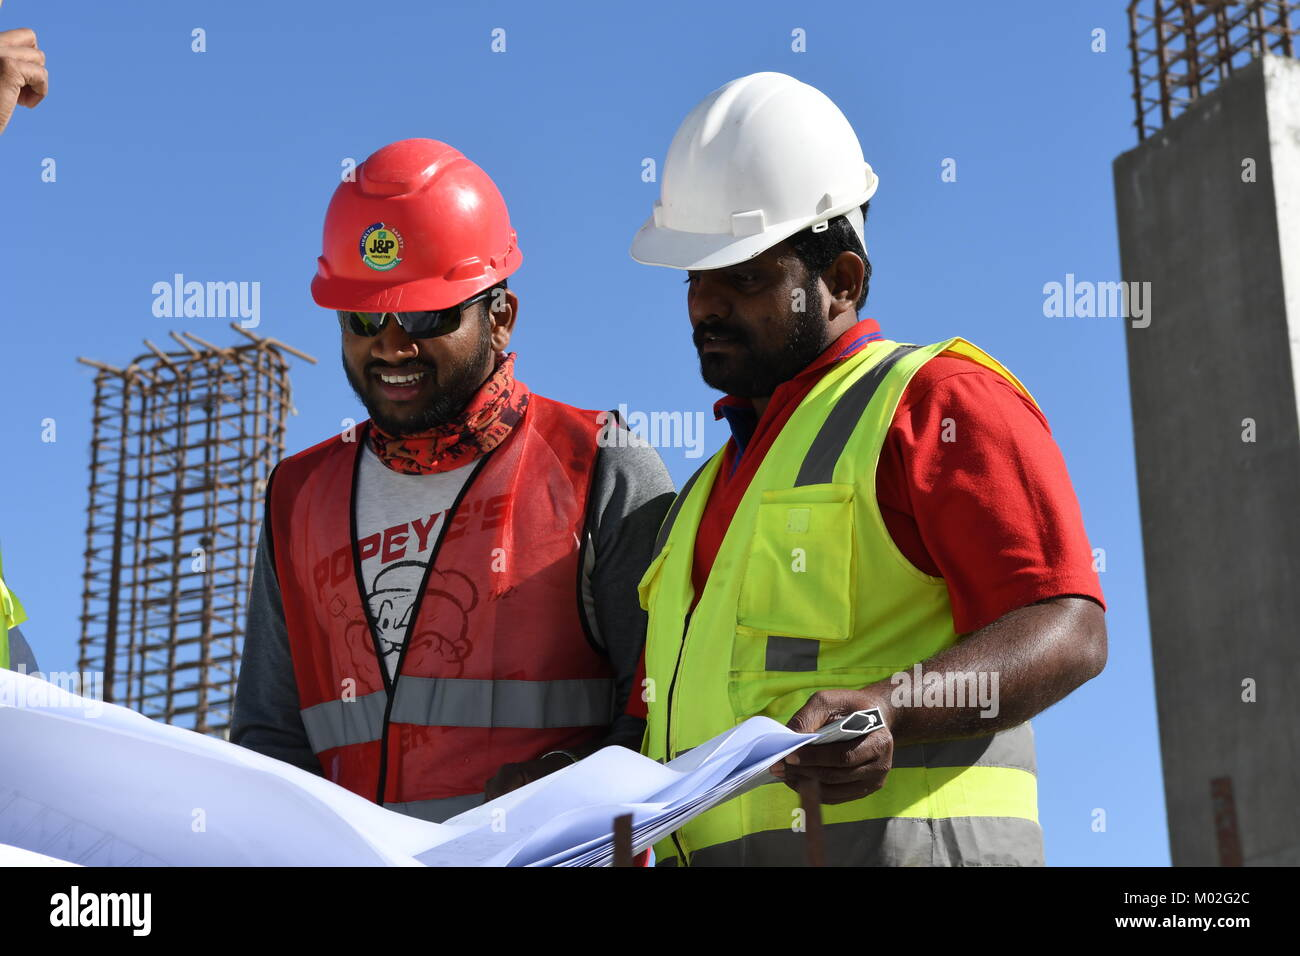 8ae35f5ae57 Indian Civil Engineers and foremen are working on the construction site -  Stock Image